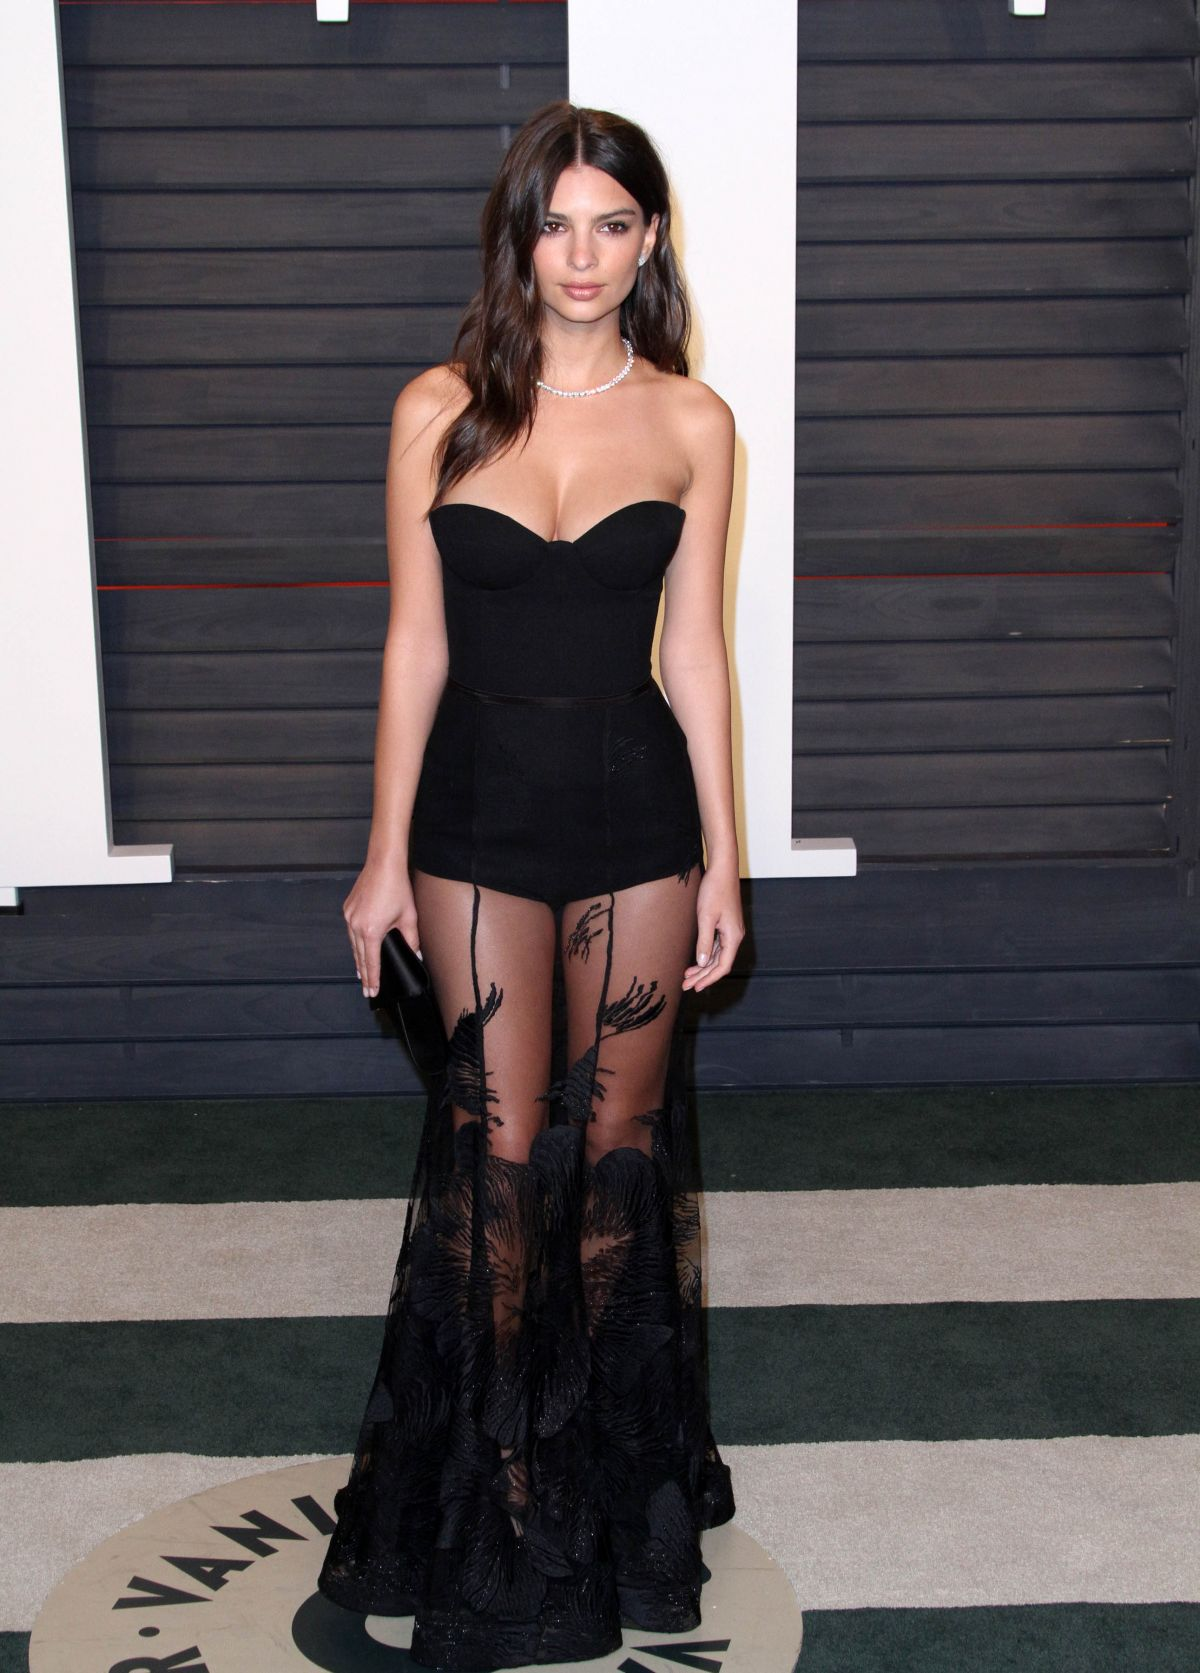 EMILY RATAJKOWSKI at Vanity Fair Oscar 2016 Party in Beverly Hills 02/28/2016